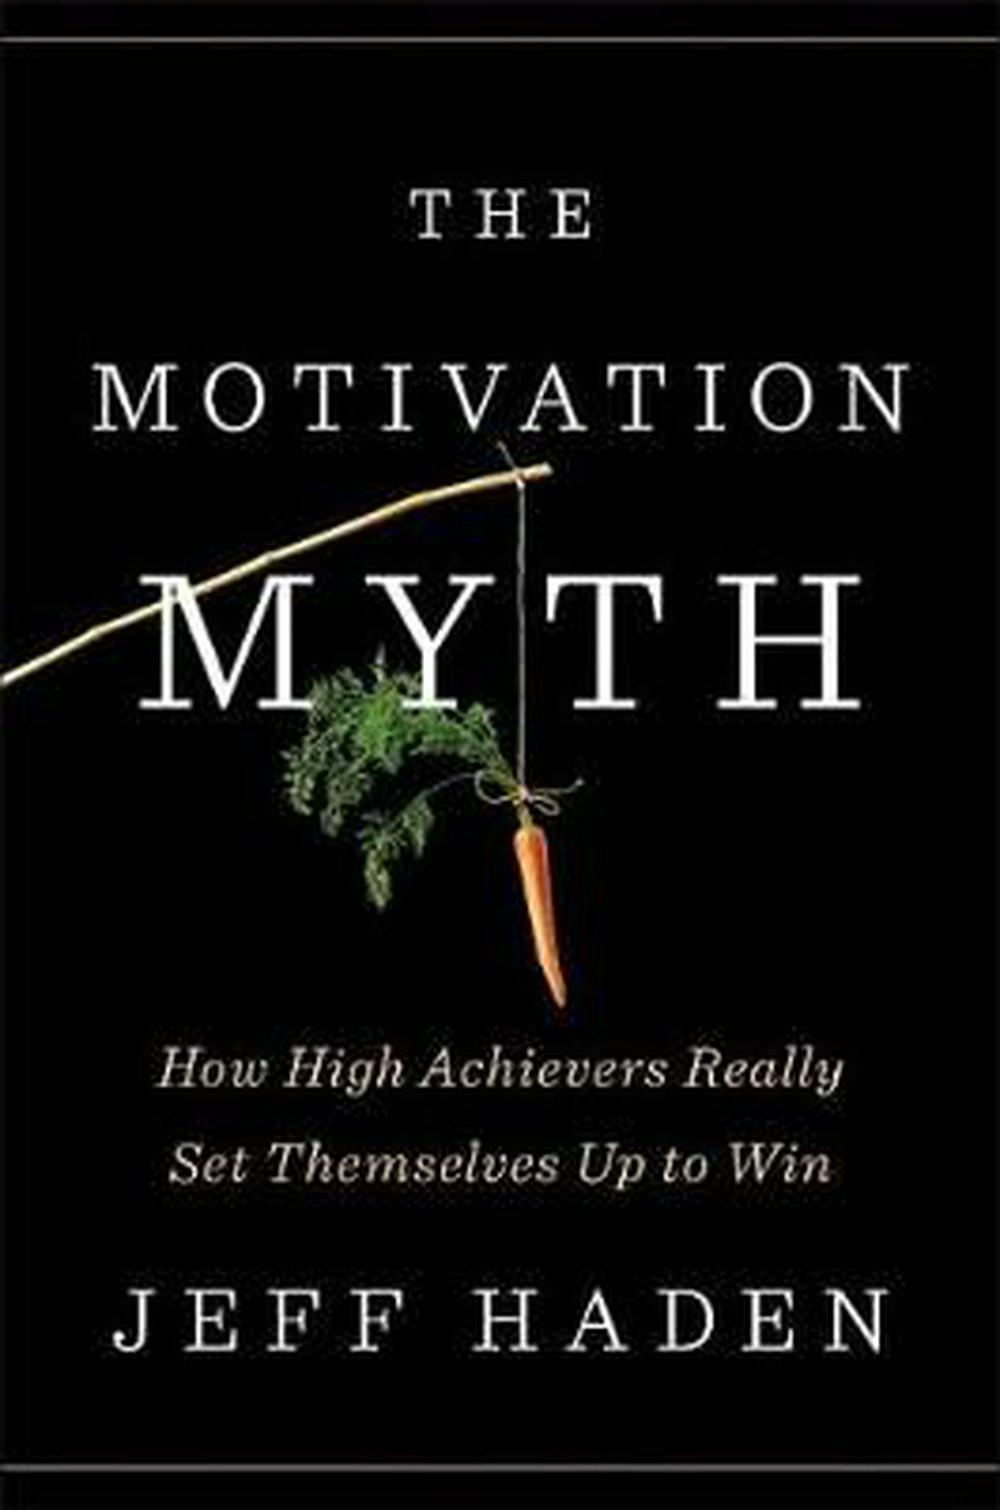 The Motivation Myth by Jeff Haden, ISBN: 9780399563768